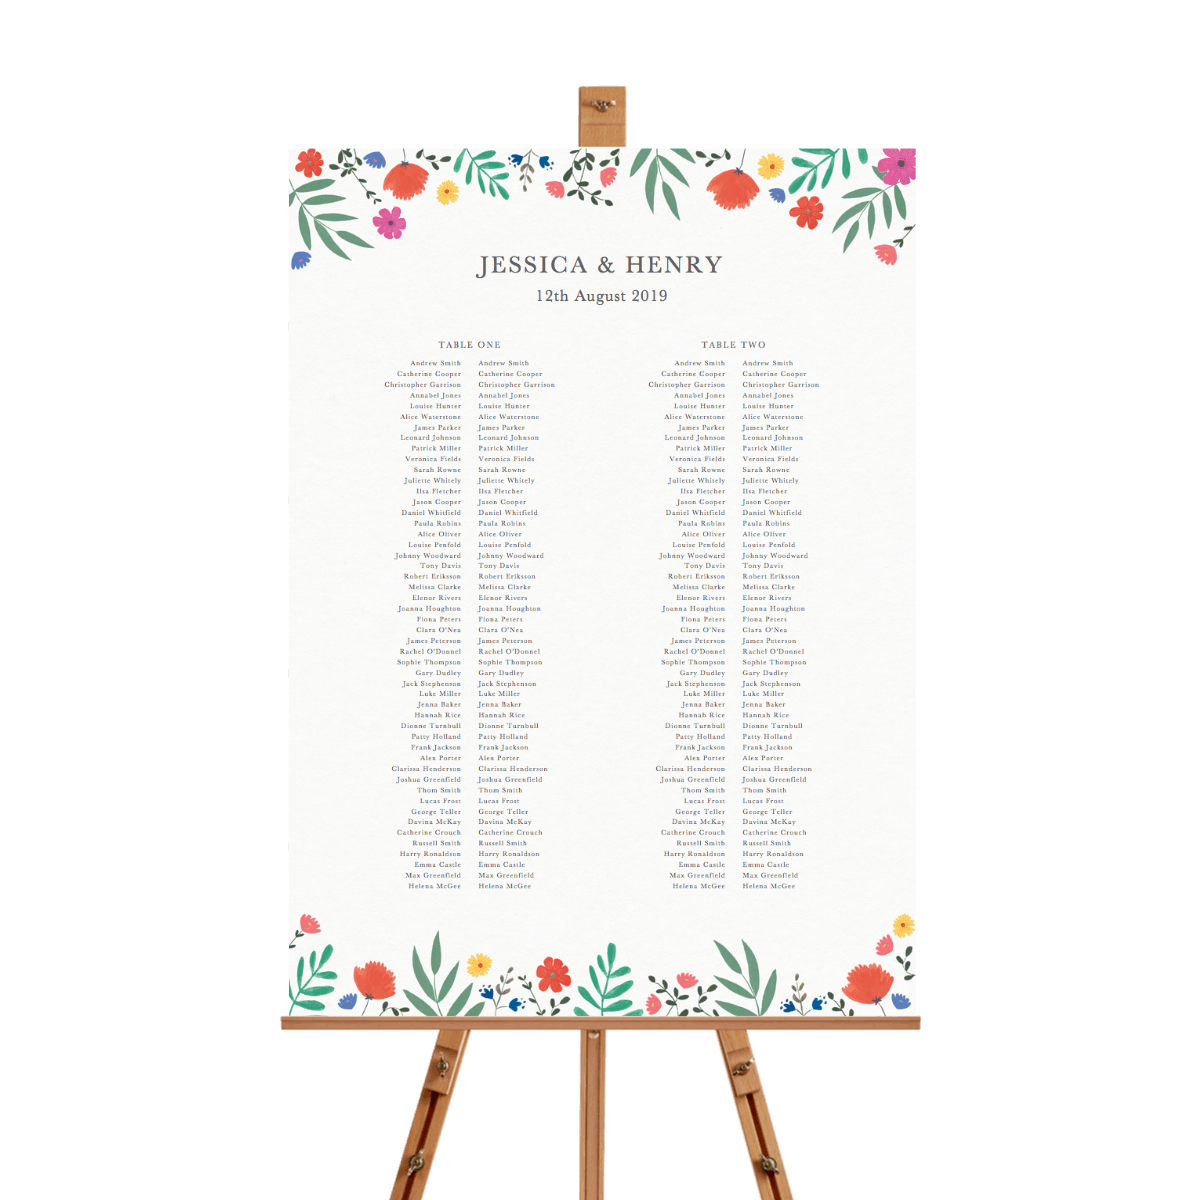 Https%3a%2f%2fwww.papier.com%2fproduct image%2f40474%2f1%2fbright wild flowers 10134 front 1530783697.png?ixlib=rb 1.1